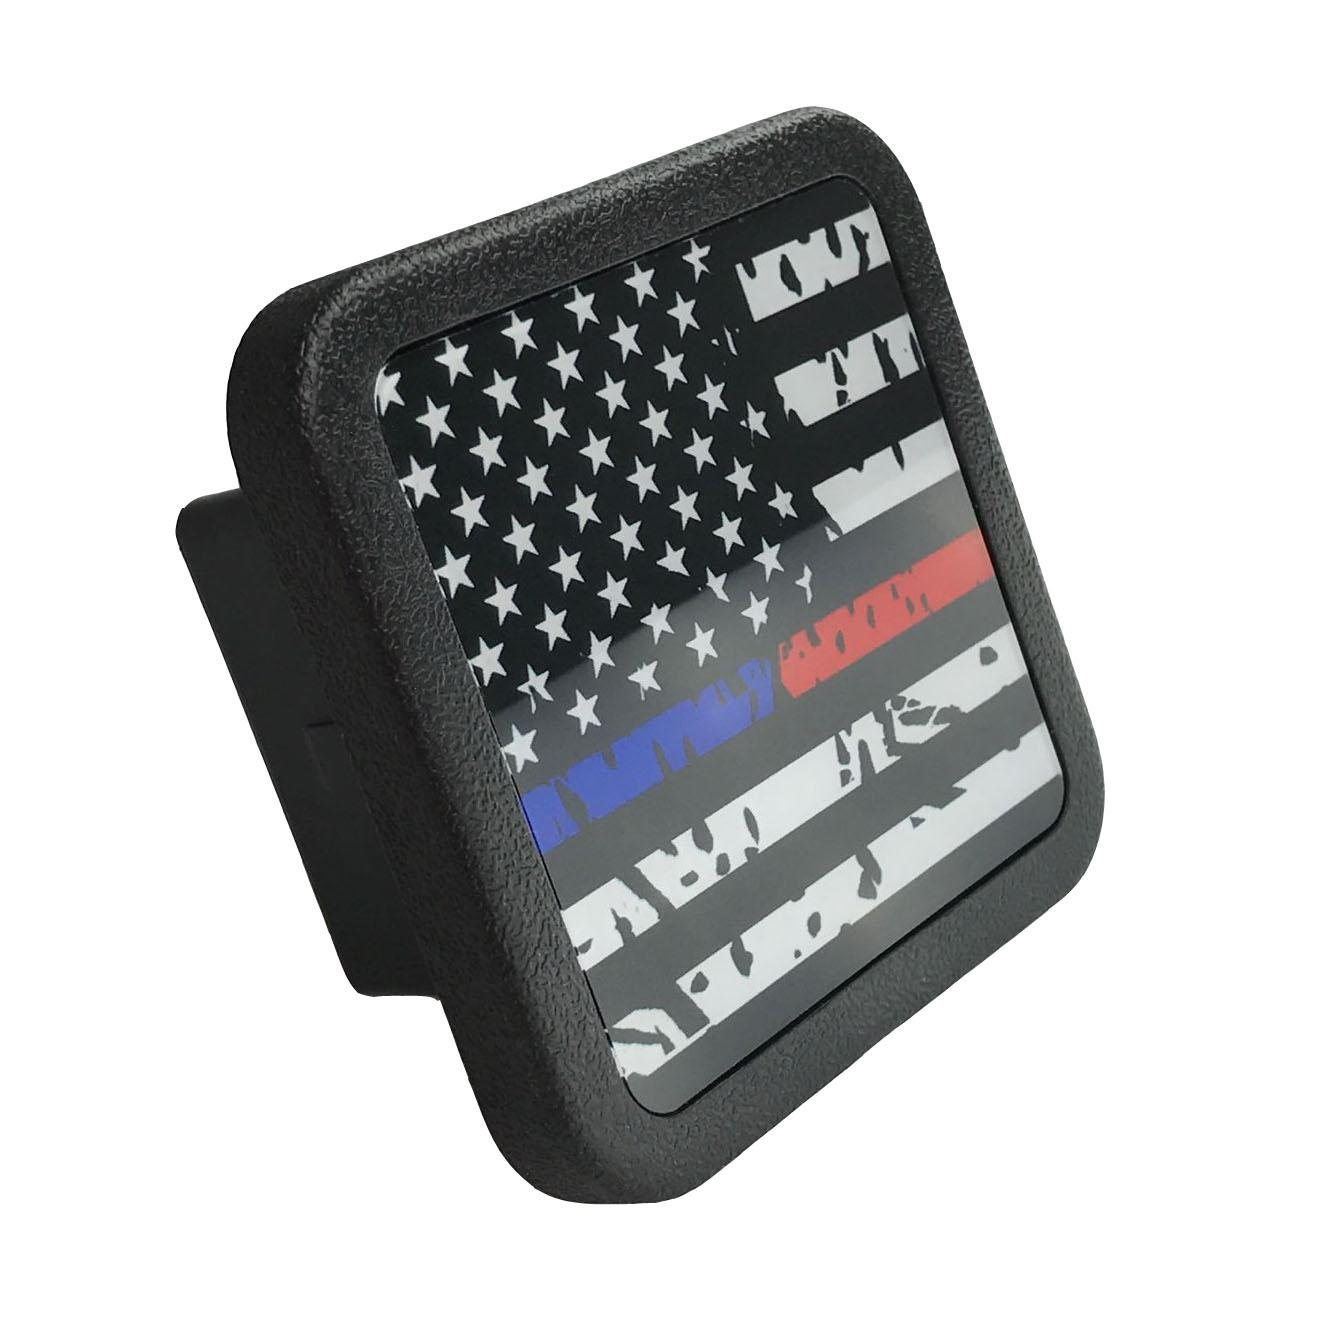 USA US American Flag Trailer Hitch Cover tube Plug Insert (Fits 2'' Receivers) by Free exercise